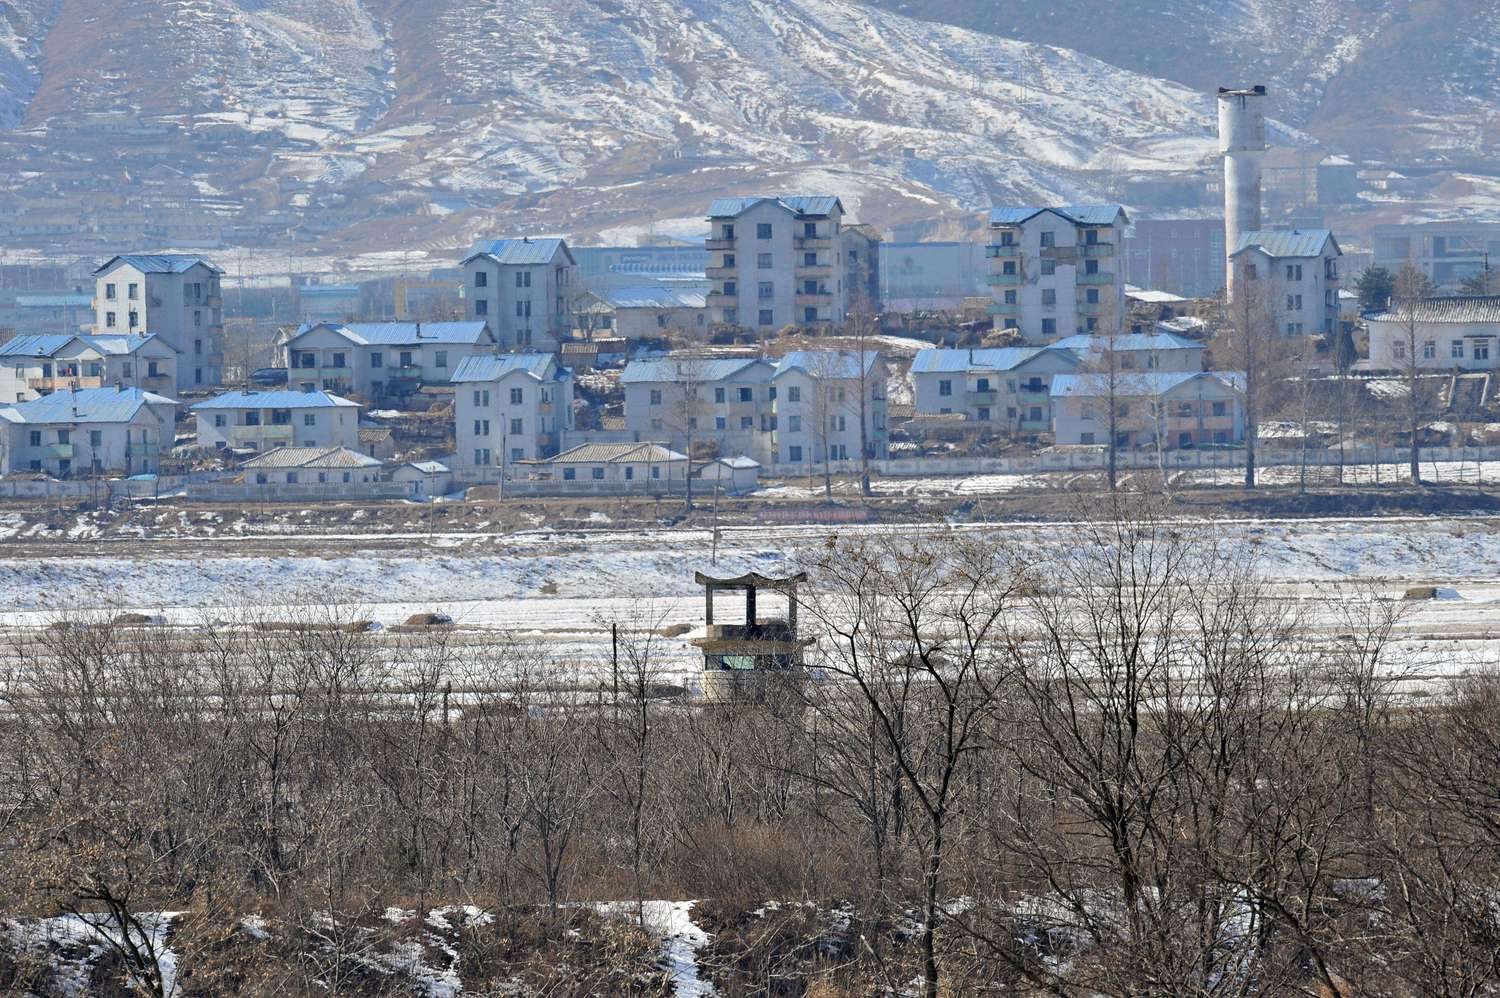 SKOREA-NKOREA-BORDER-VILLAGE